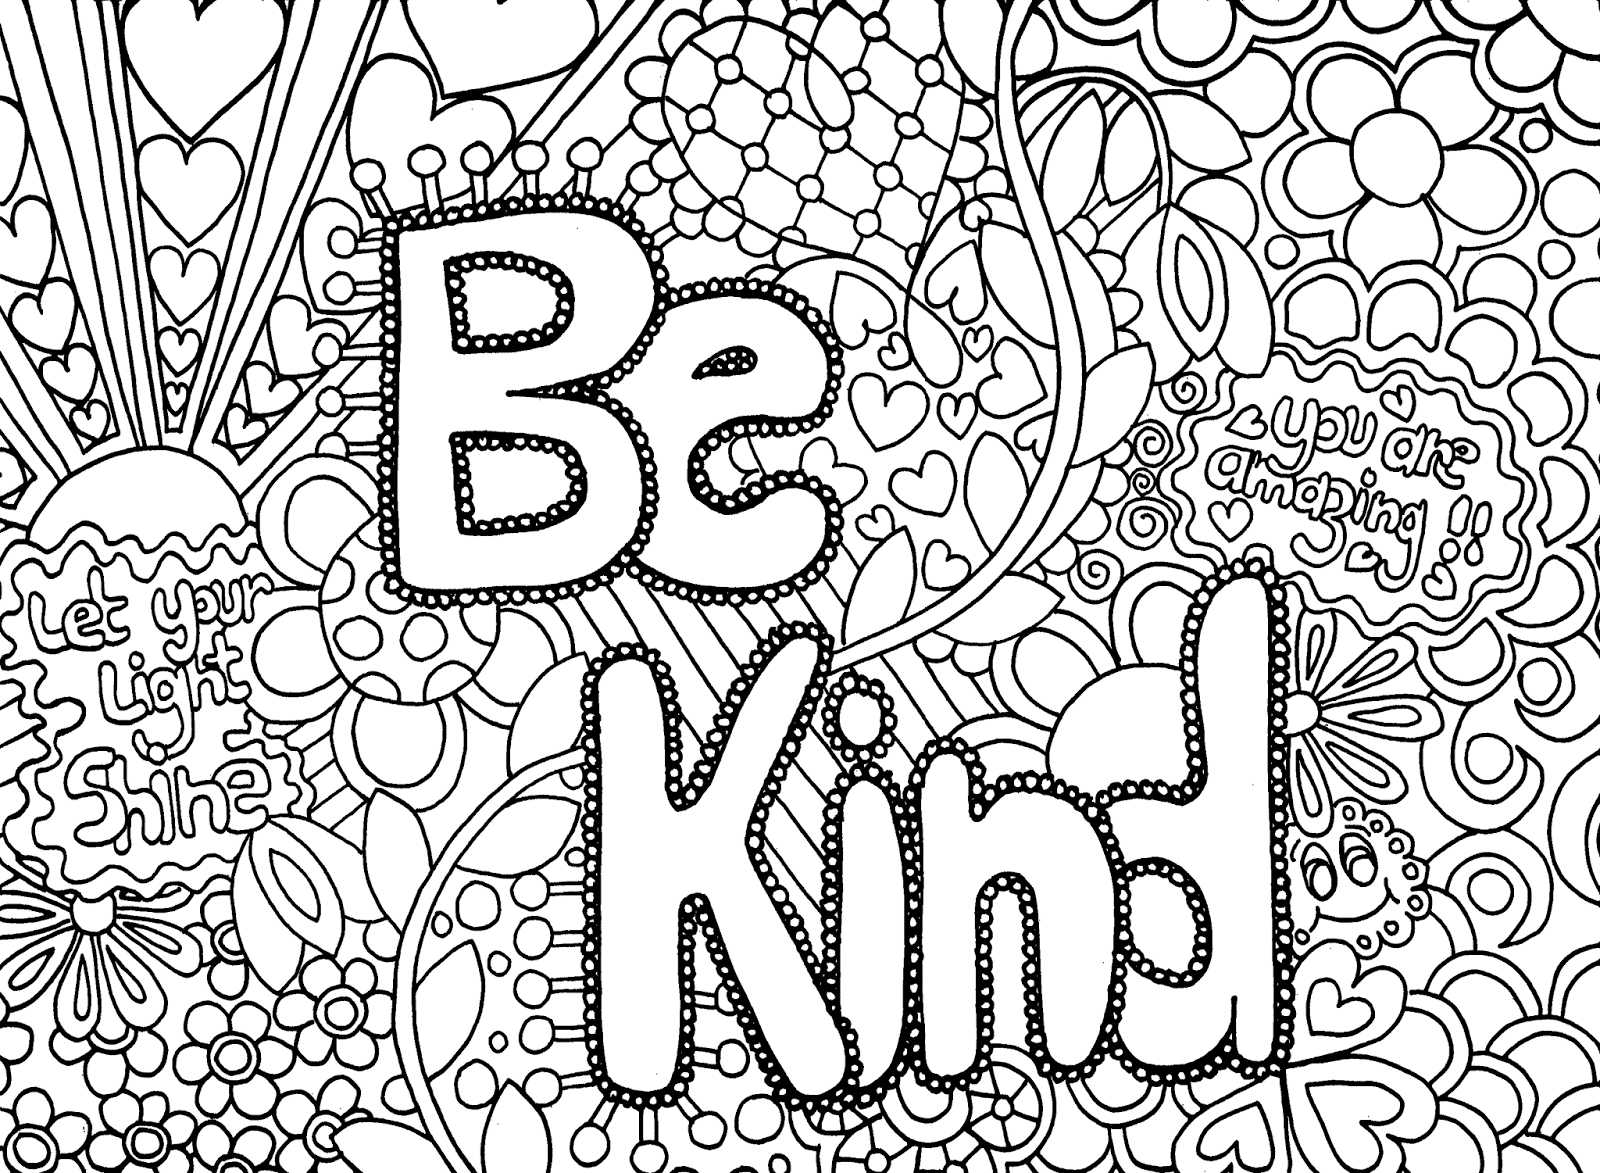 difficult hard coloring pages printable free online printable coloring pages sheets for kids get the latest free difficult hard coloring pages printable - Coloring Pages